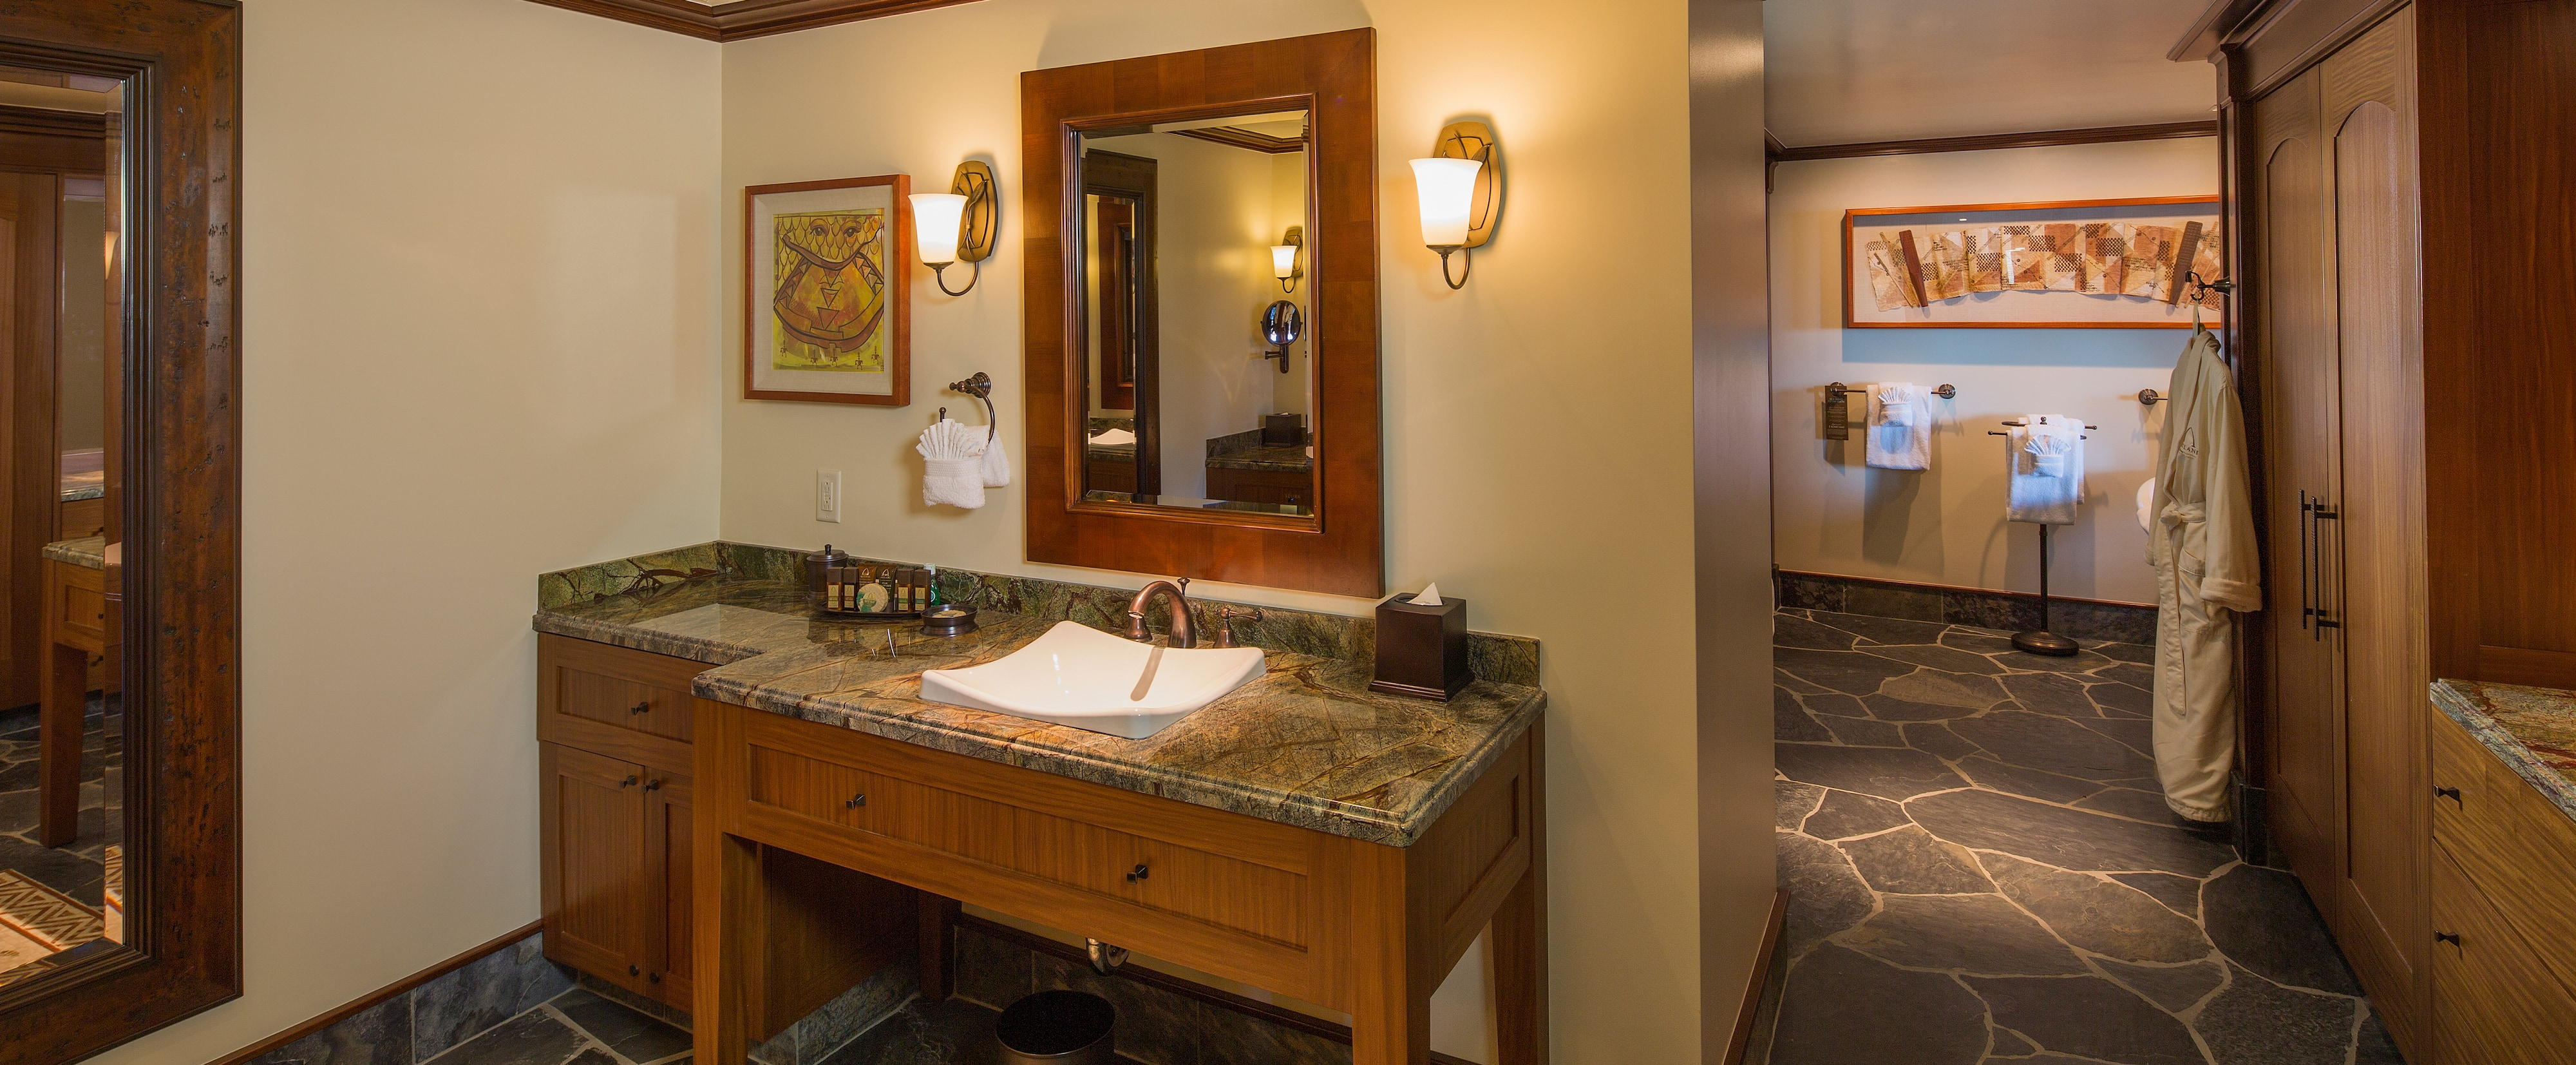 A bathroom vanity in the 2-Bedroom Villa at Aulani